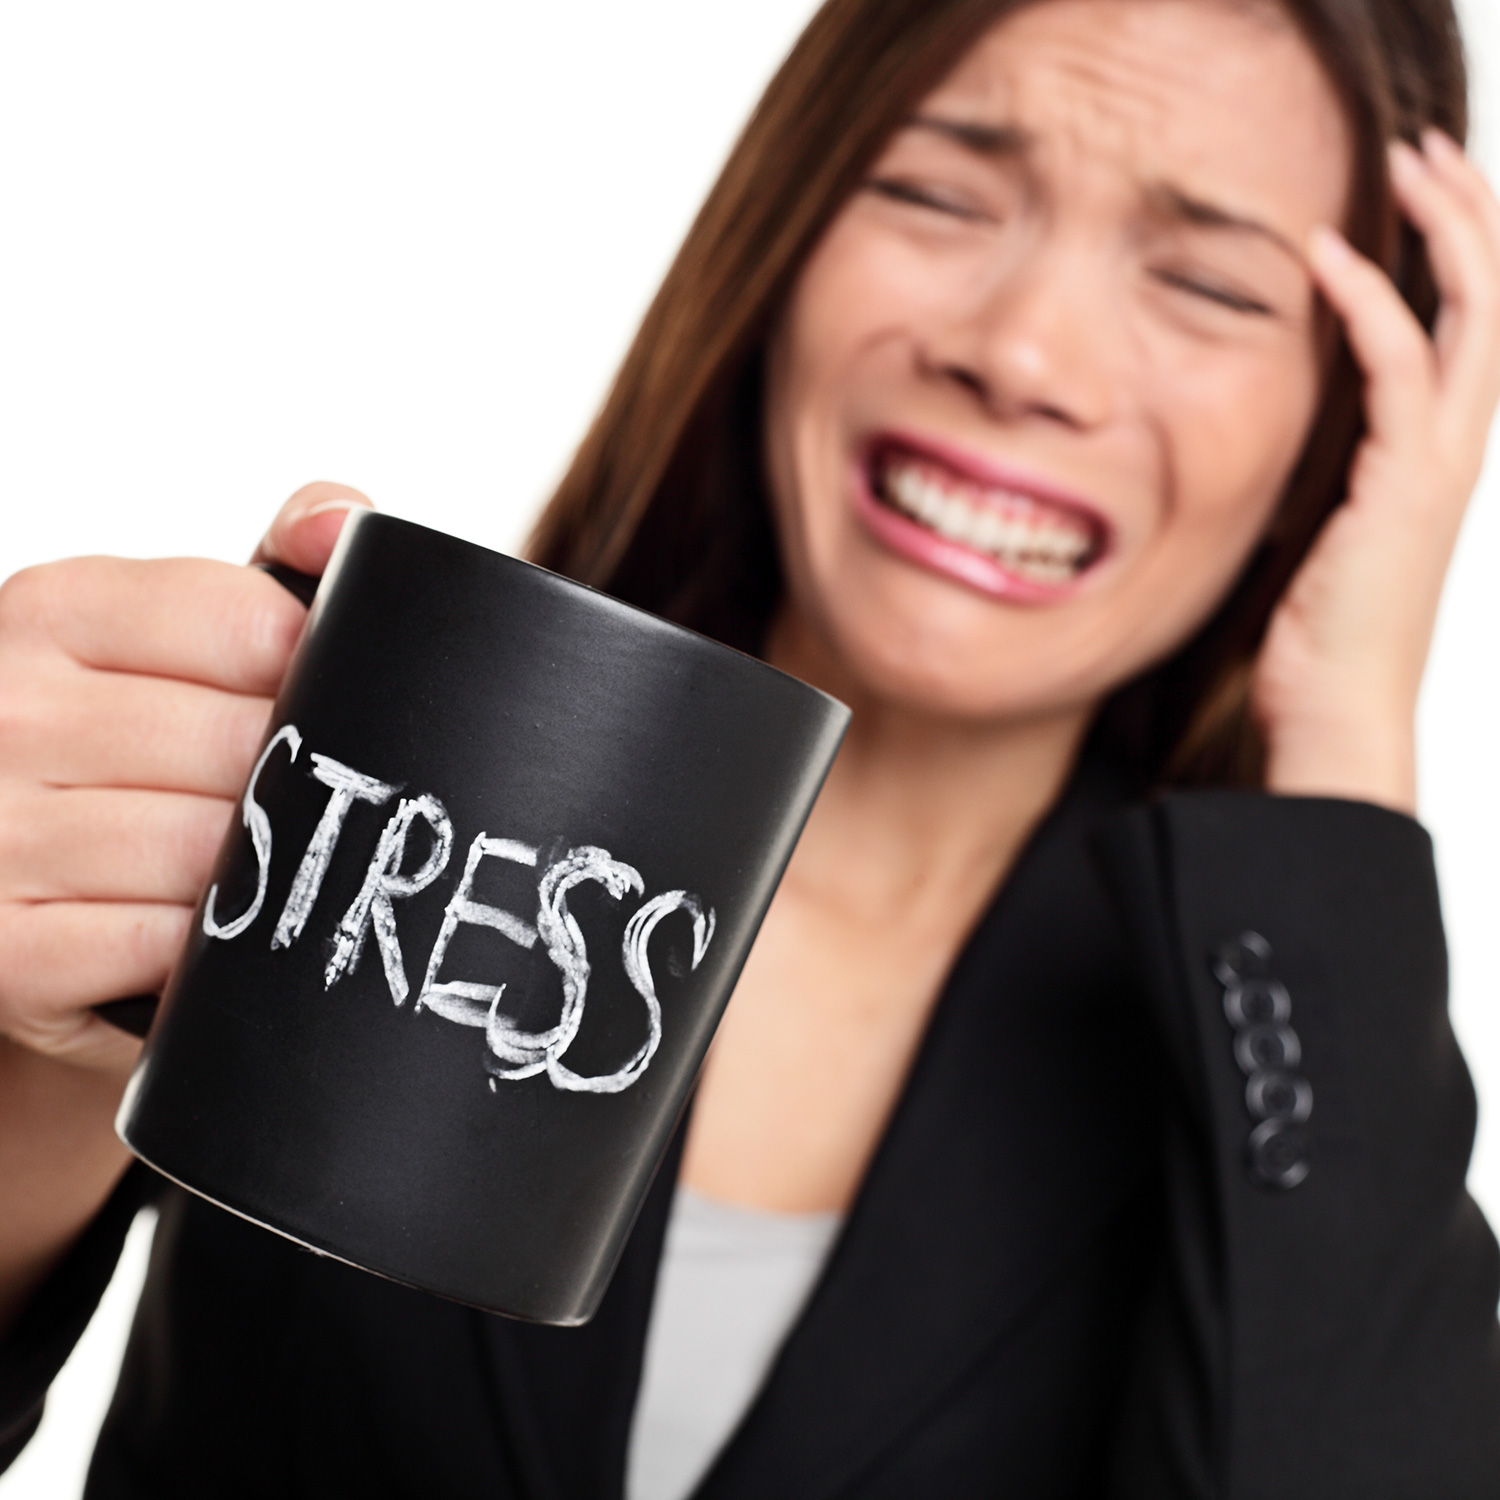 Stress management tips